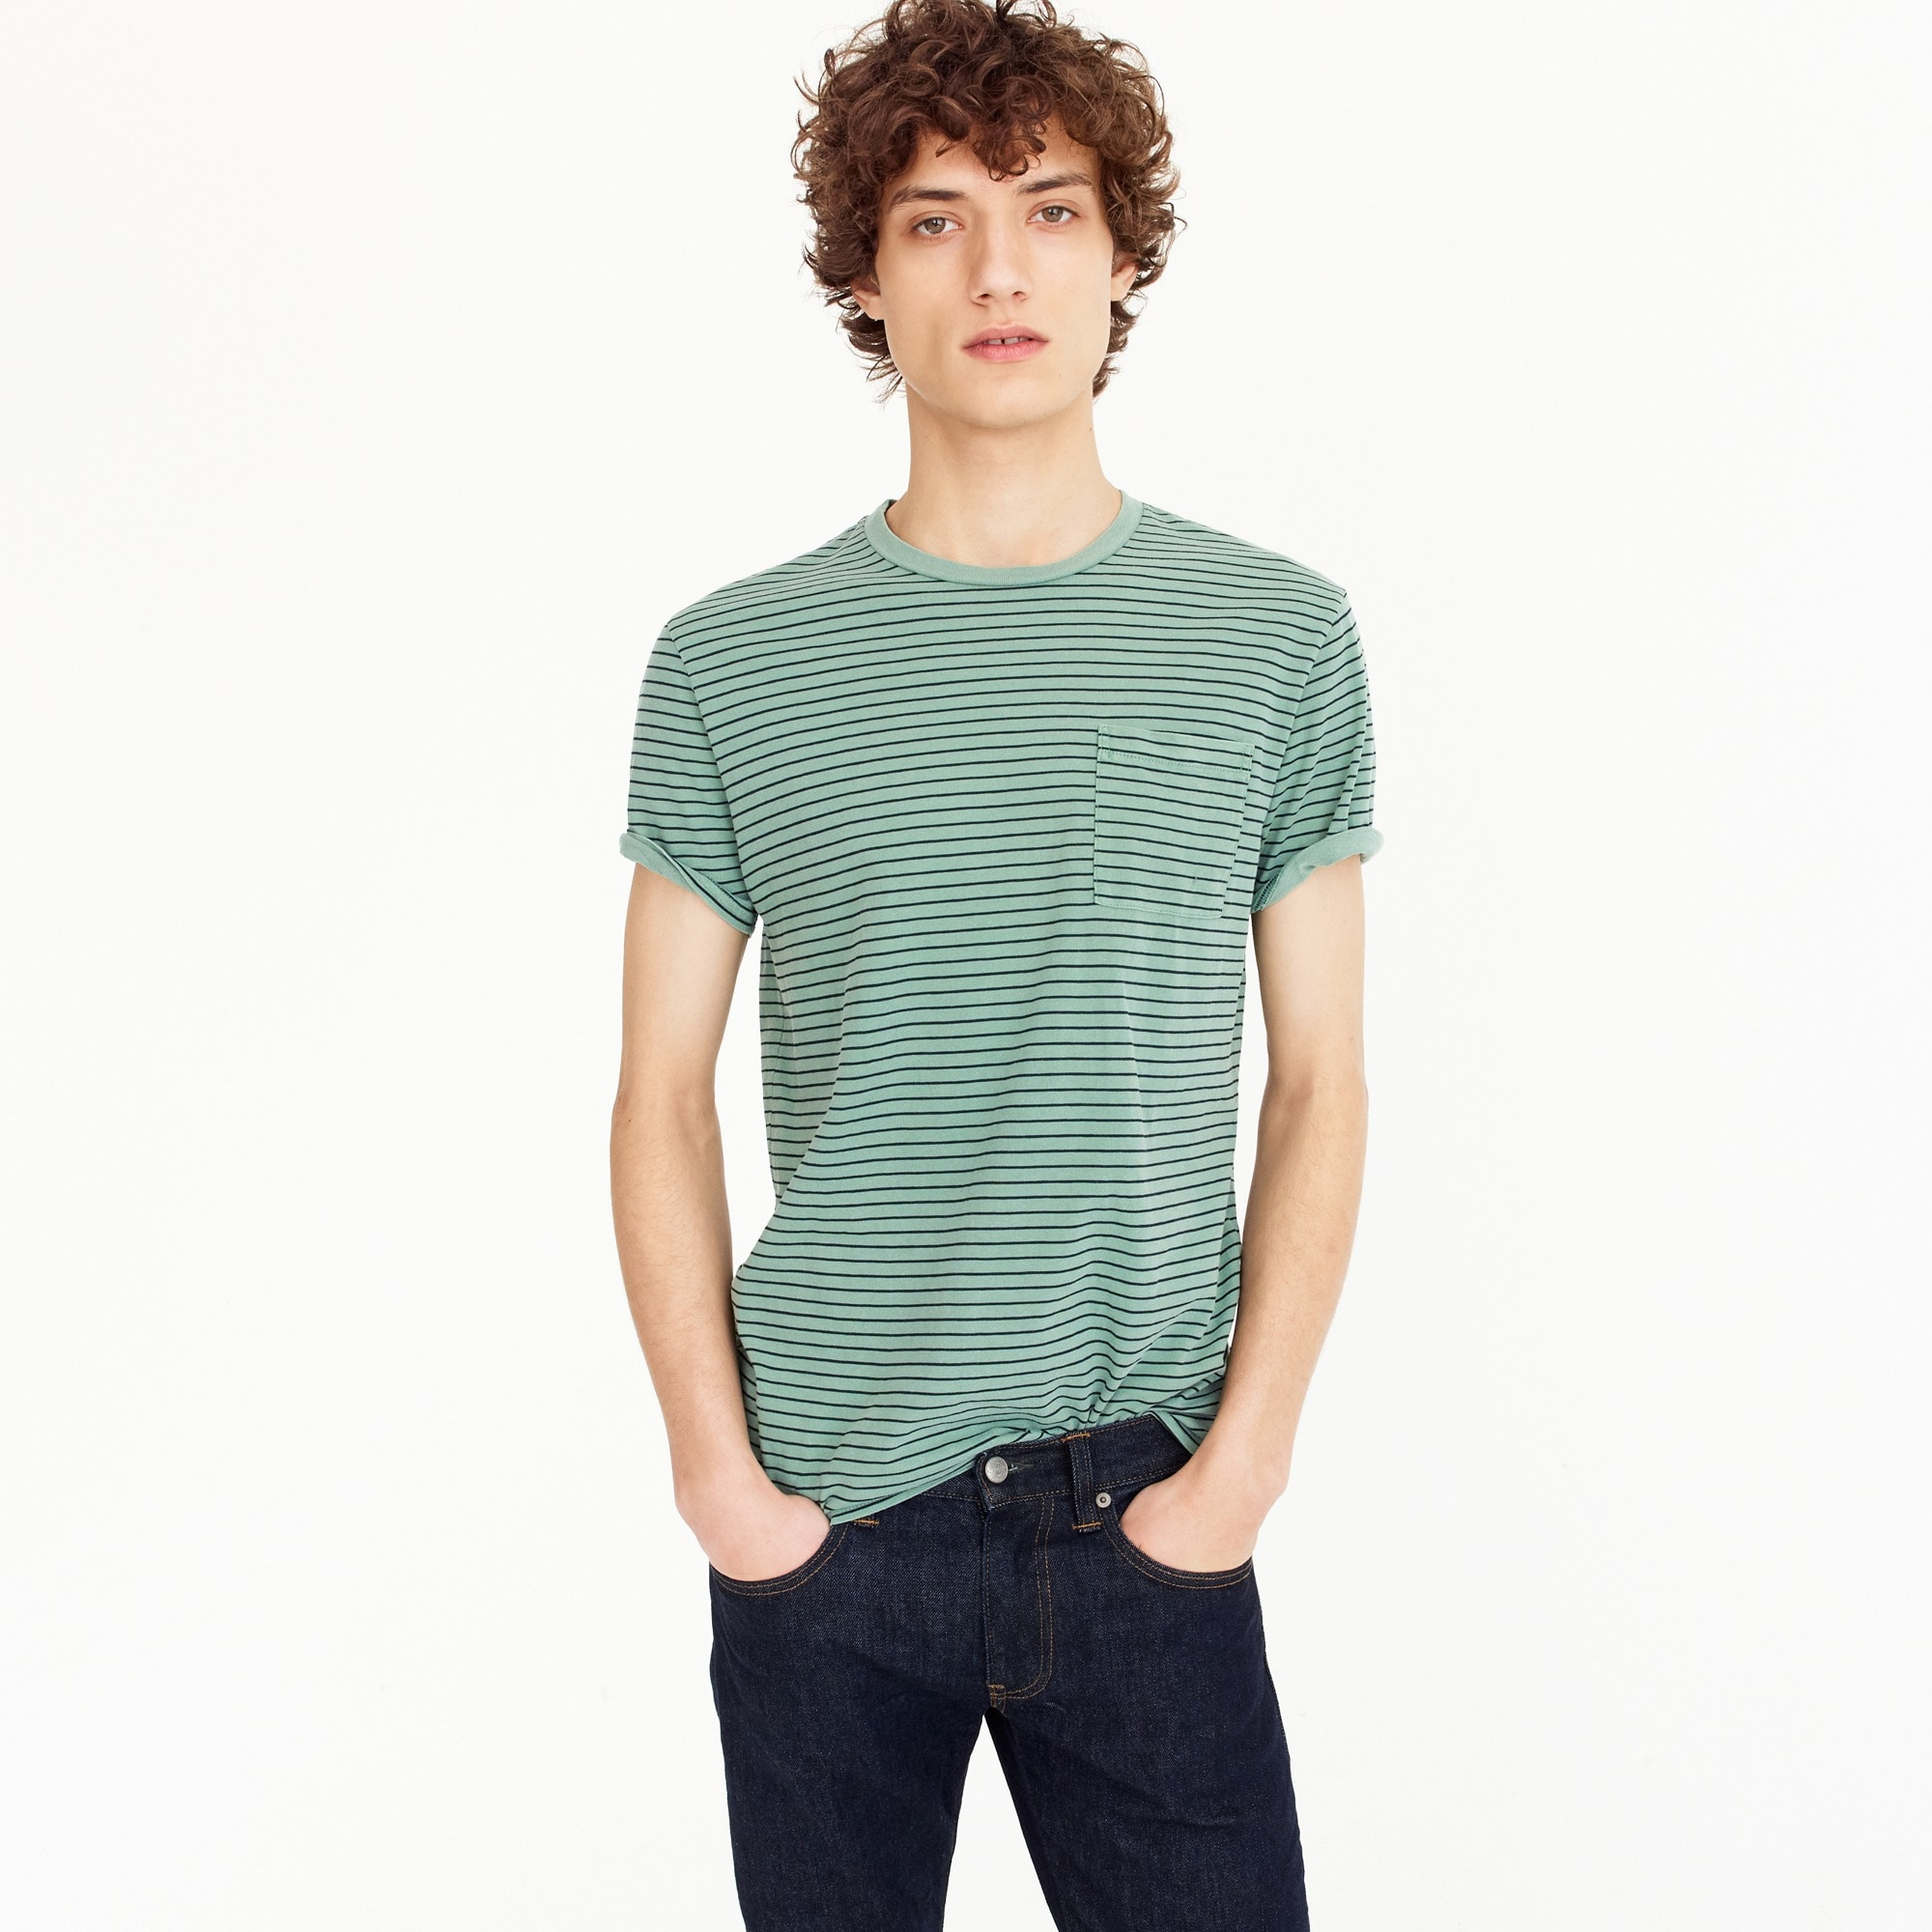 Image 1 for Garment-dyed T-shirt in green stripe